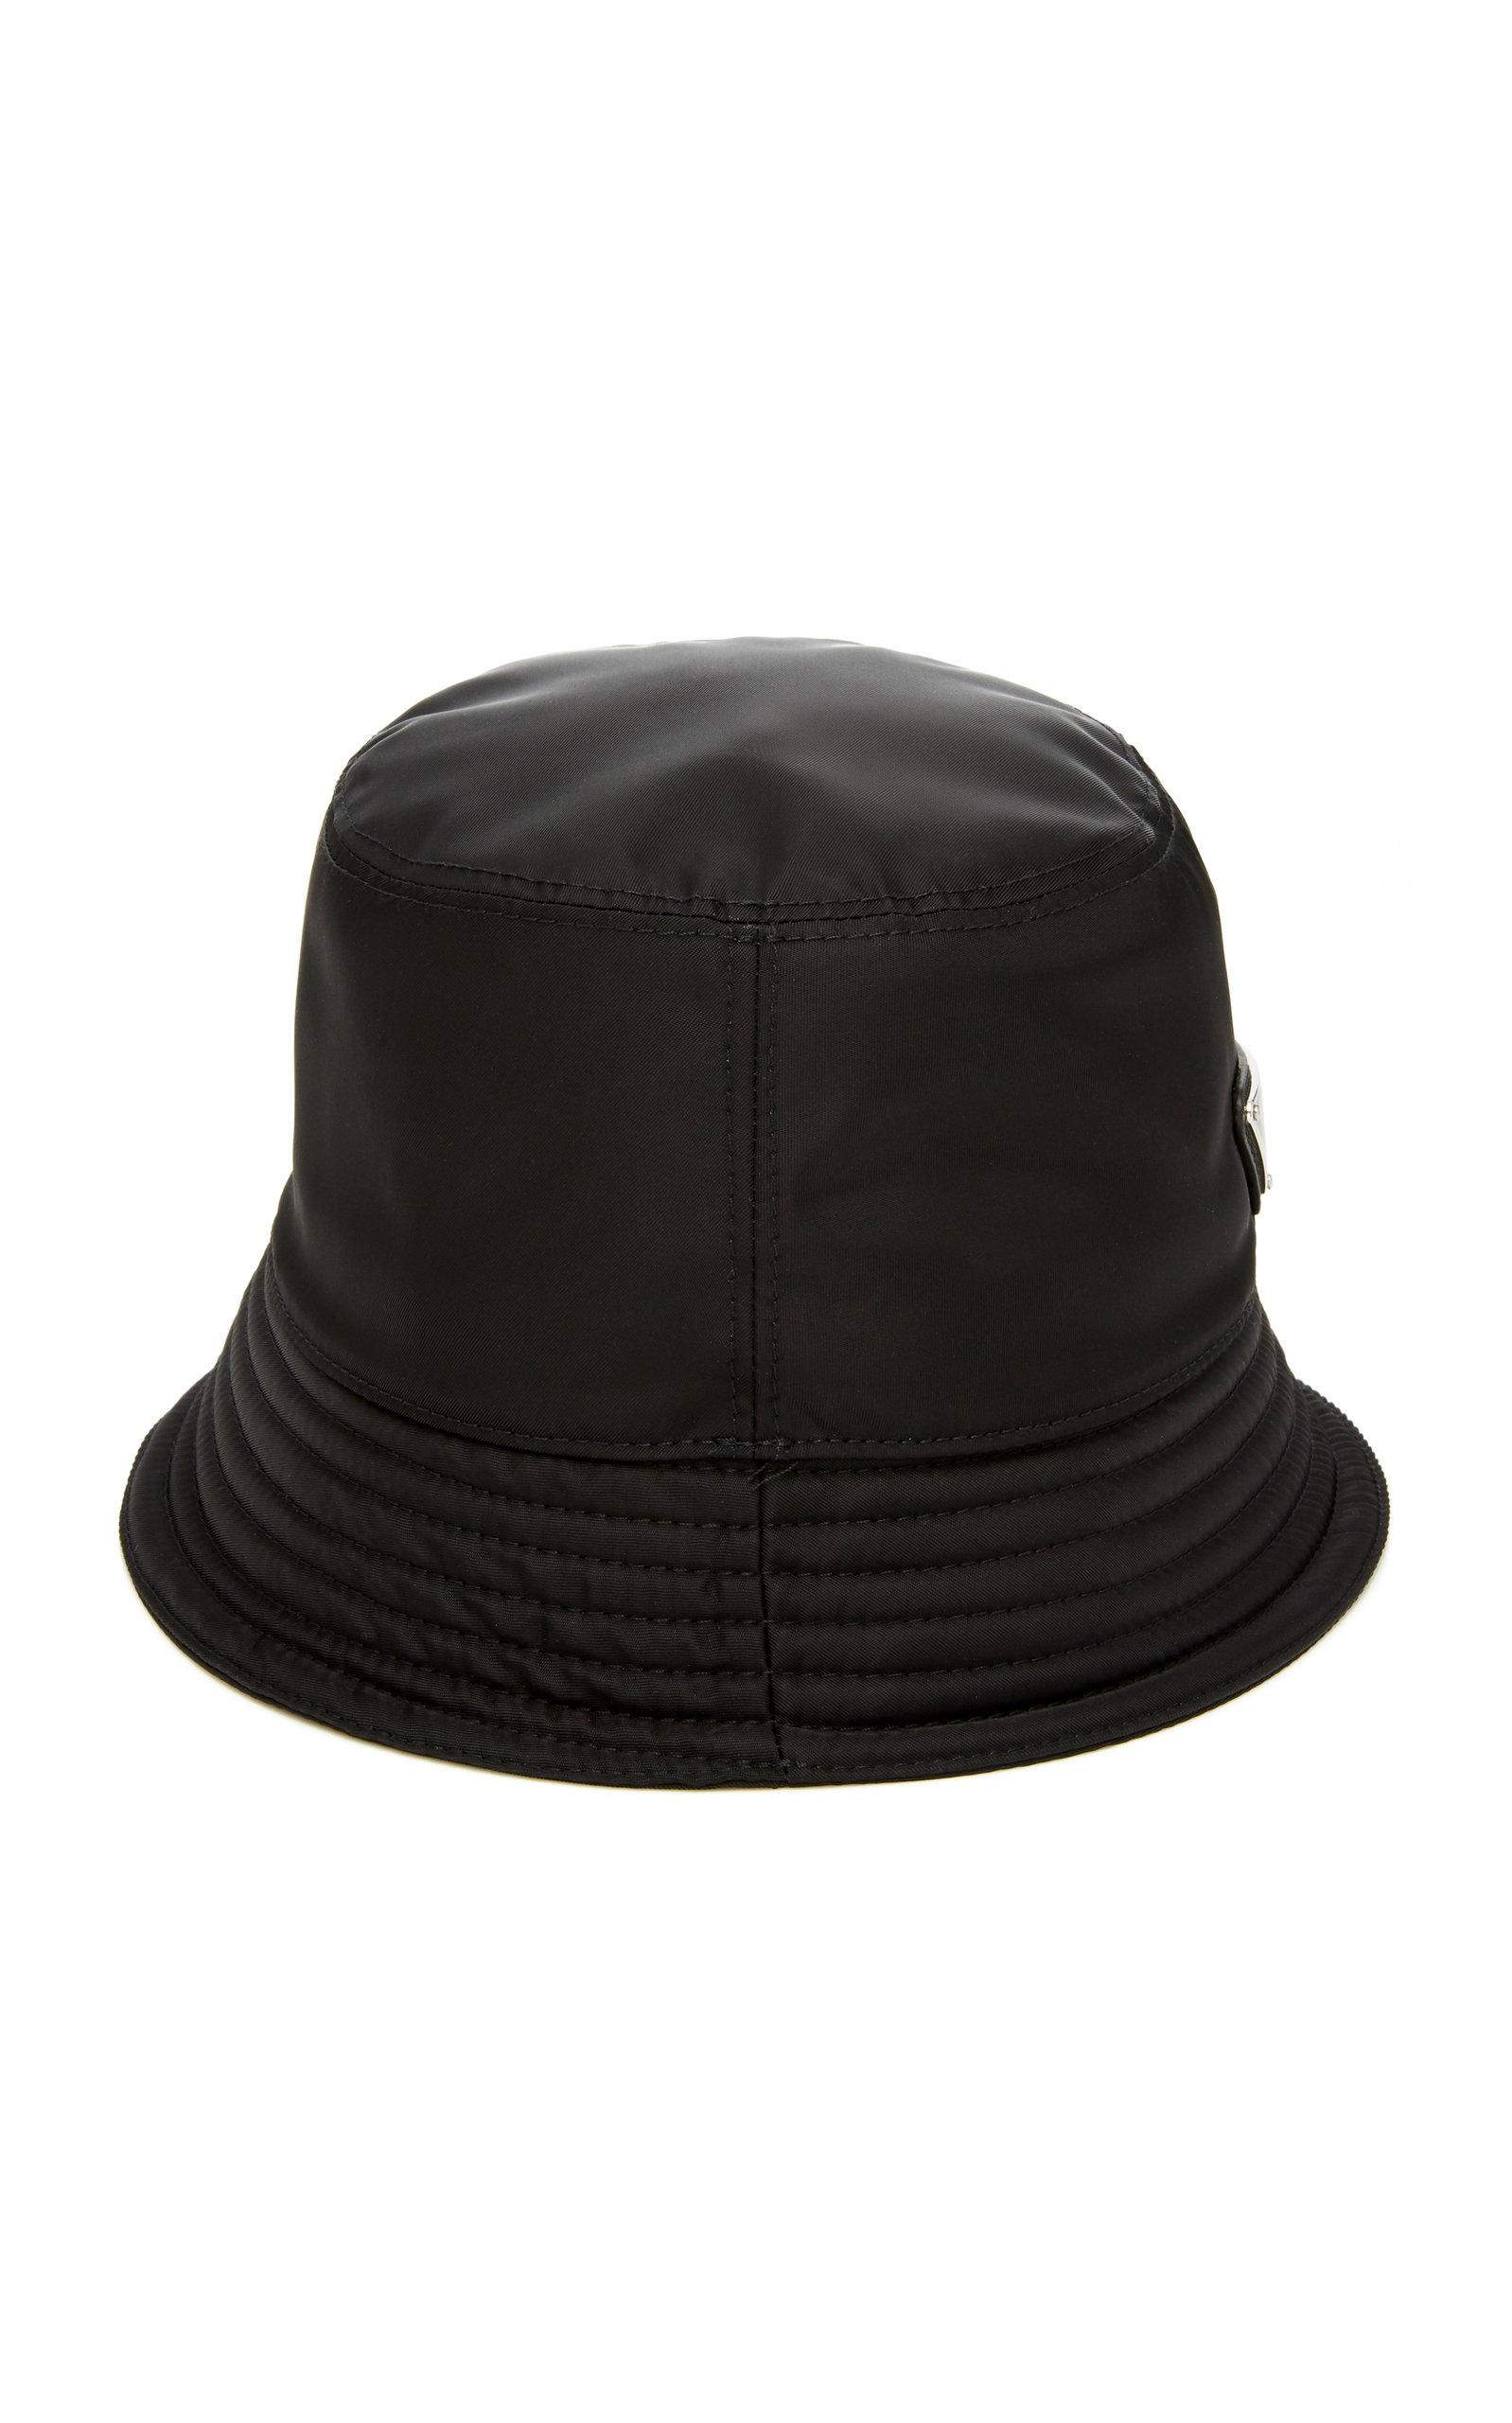 cb5e03f865f Prada mens nylon bucket hat with logo in black modesens jpg 1598x2560 Prada  sun hat